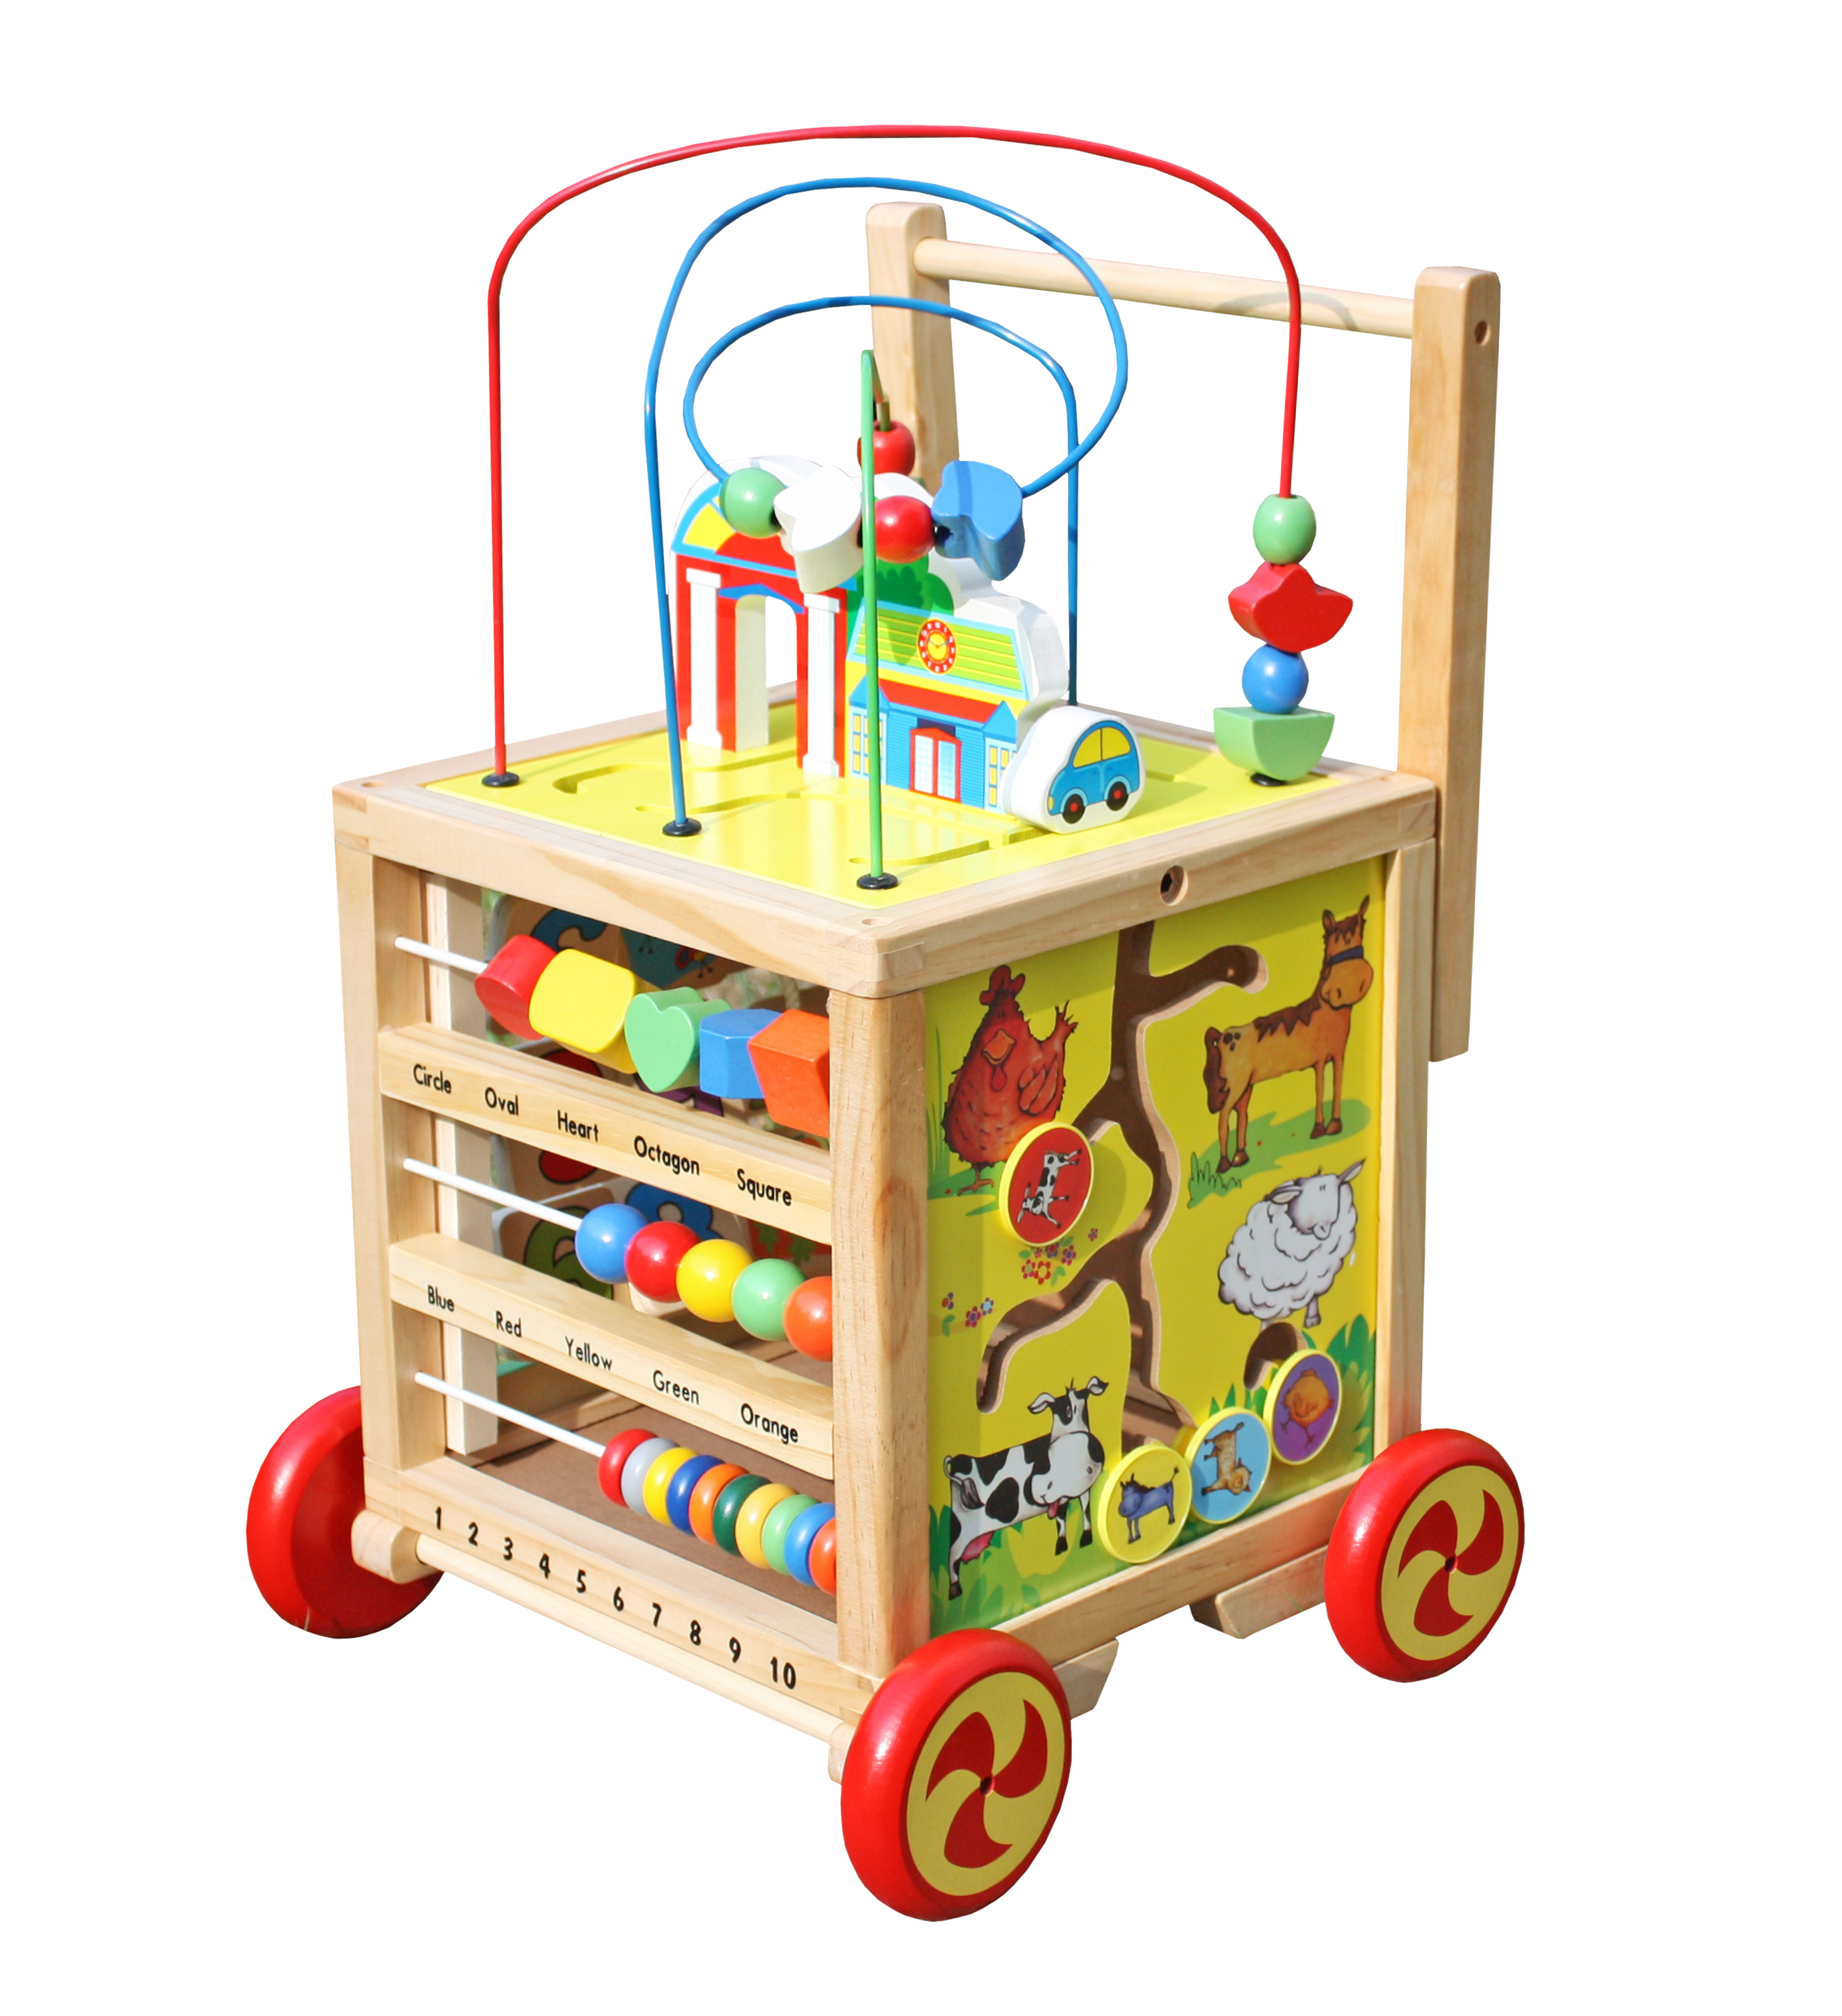 Timy Wooden Learning Bead Maze Cube 5 in 1 Activity Center